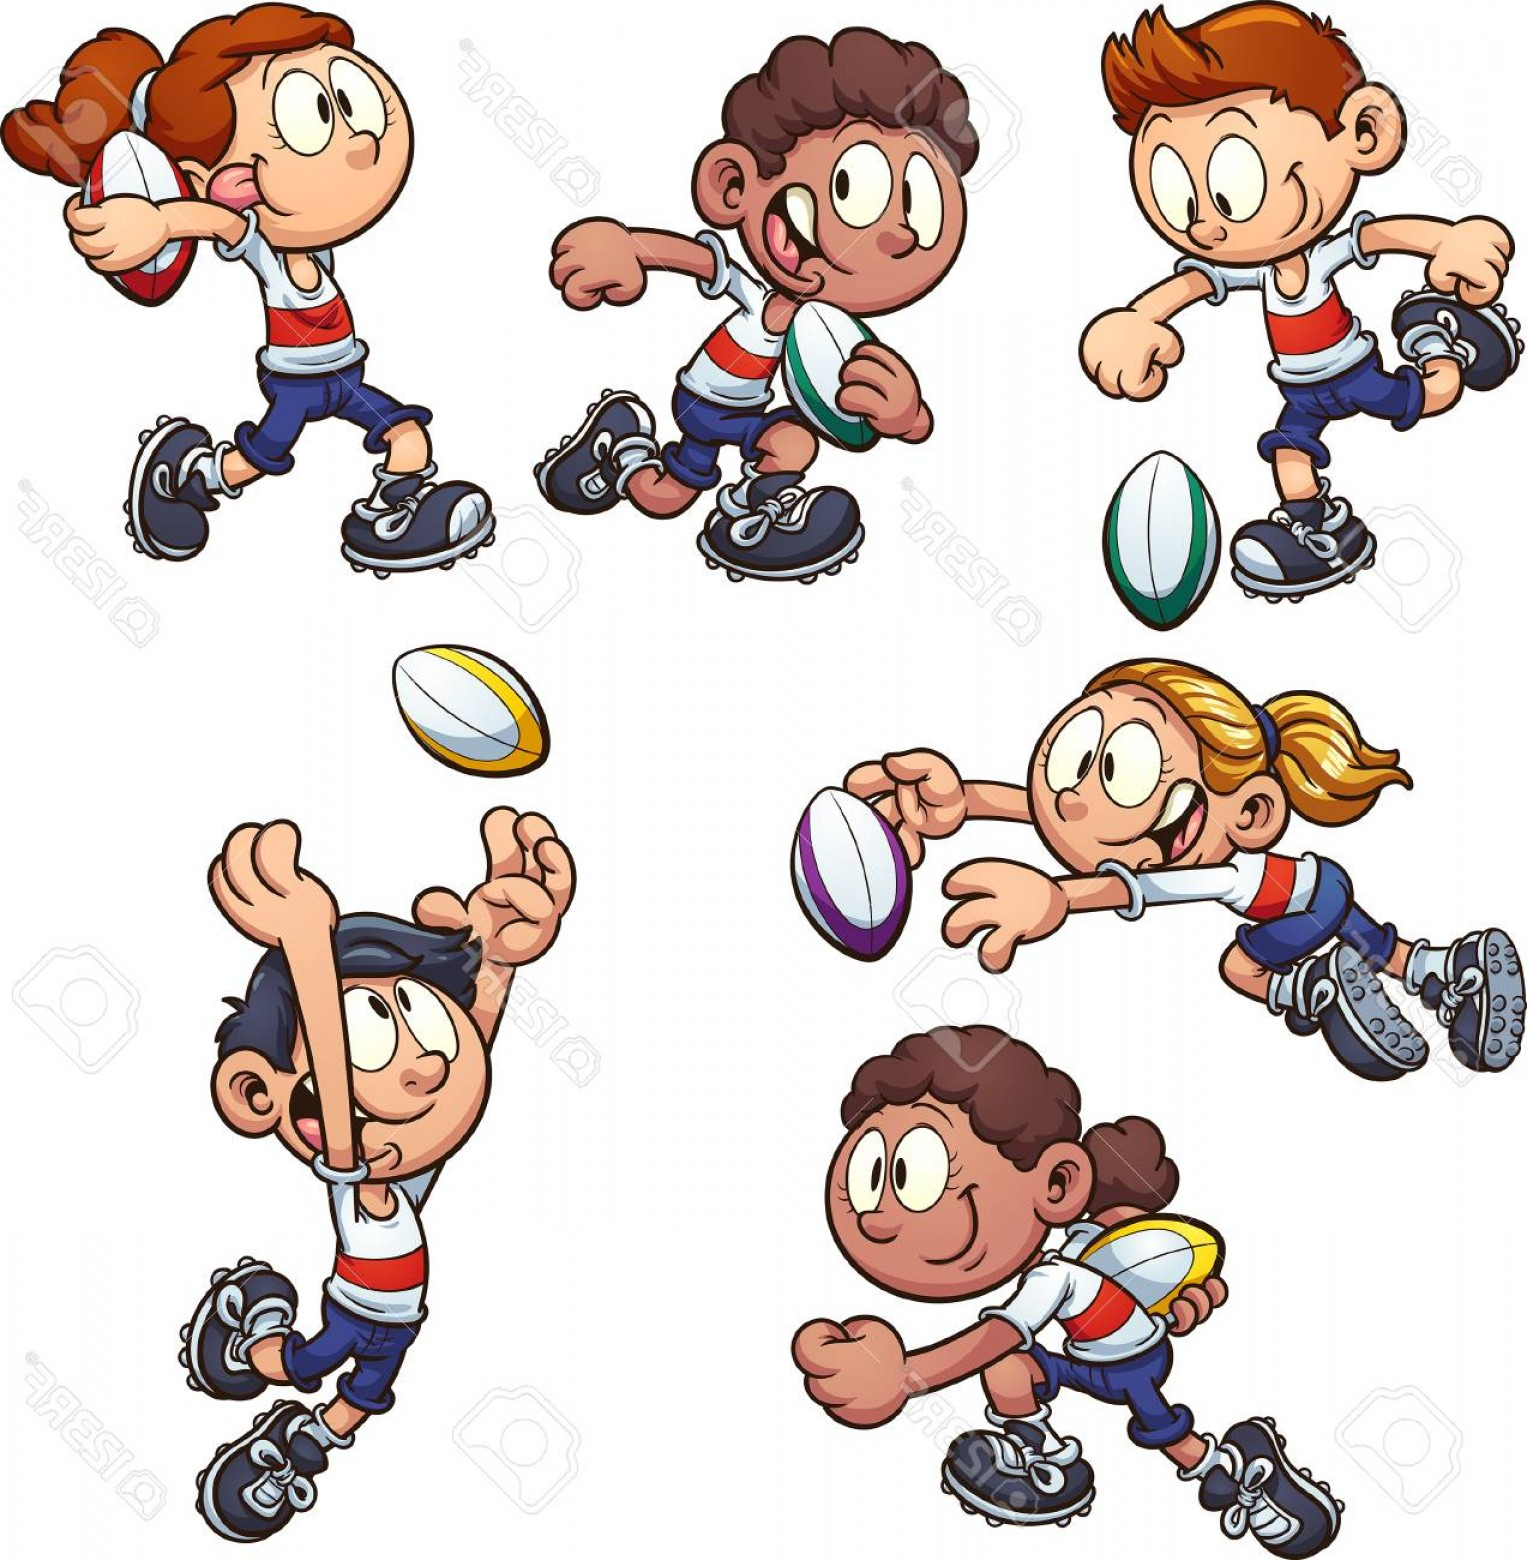 Kid clipart seperate clipart Photostock Vector Cartoon Kids Playing Rugby Vector Clip Art ... clipart